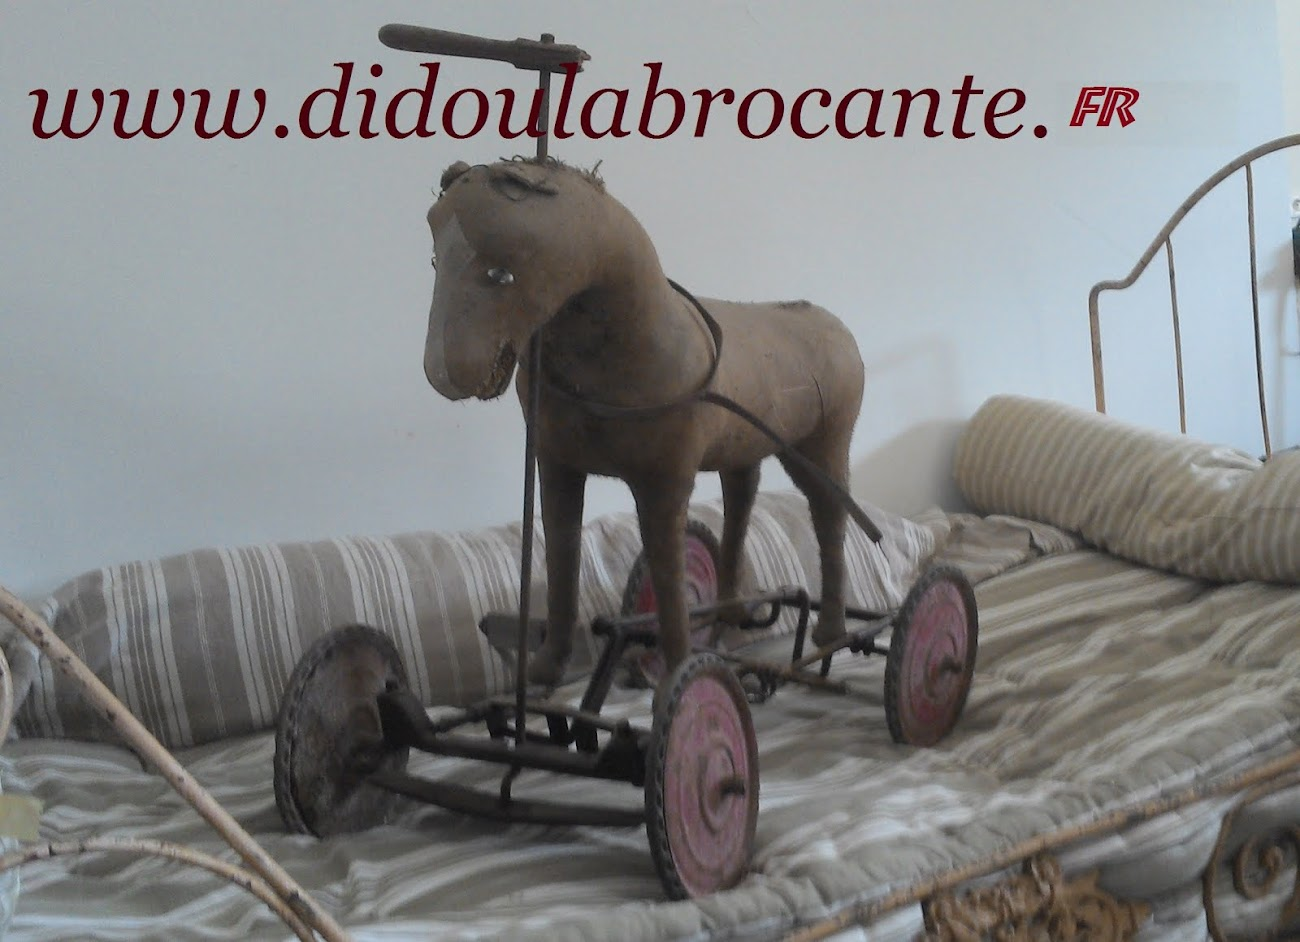 www.didoulabrocante.fr